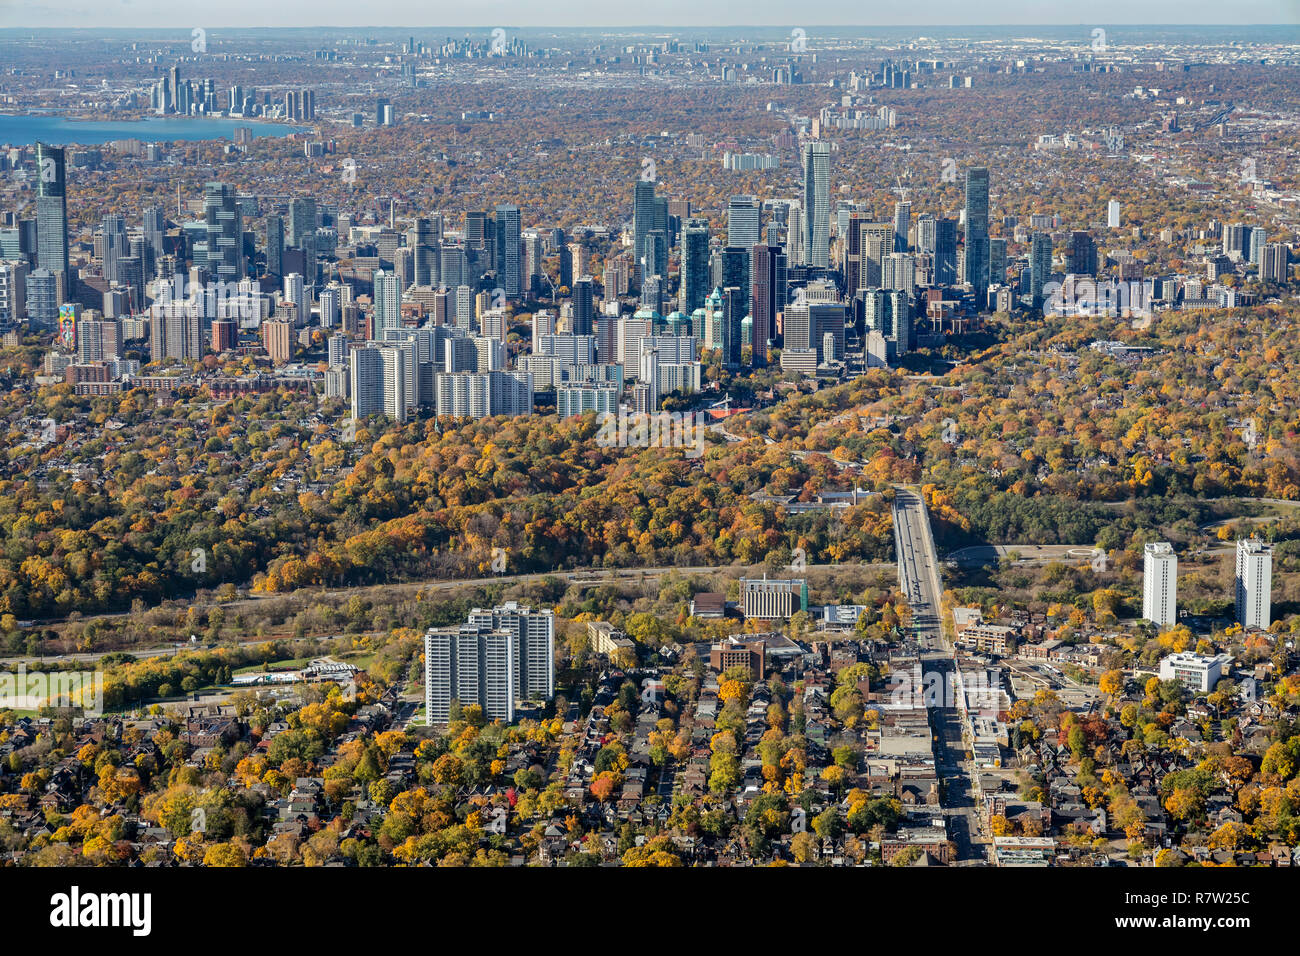 An aerial view from Danforth Avenue looking west toward Yonge and Bloor Streets. - Stock Image